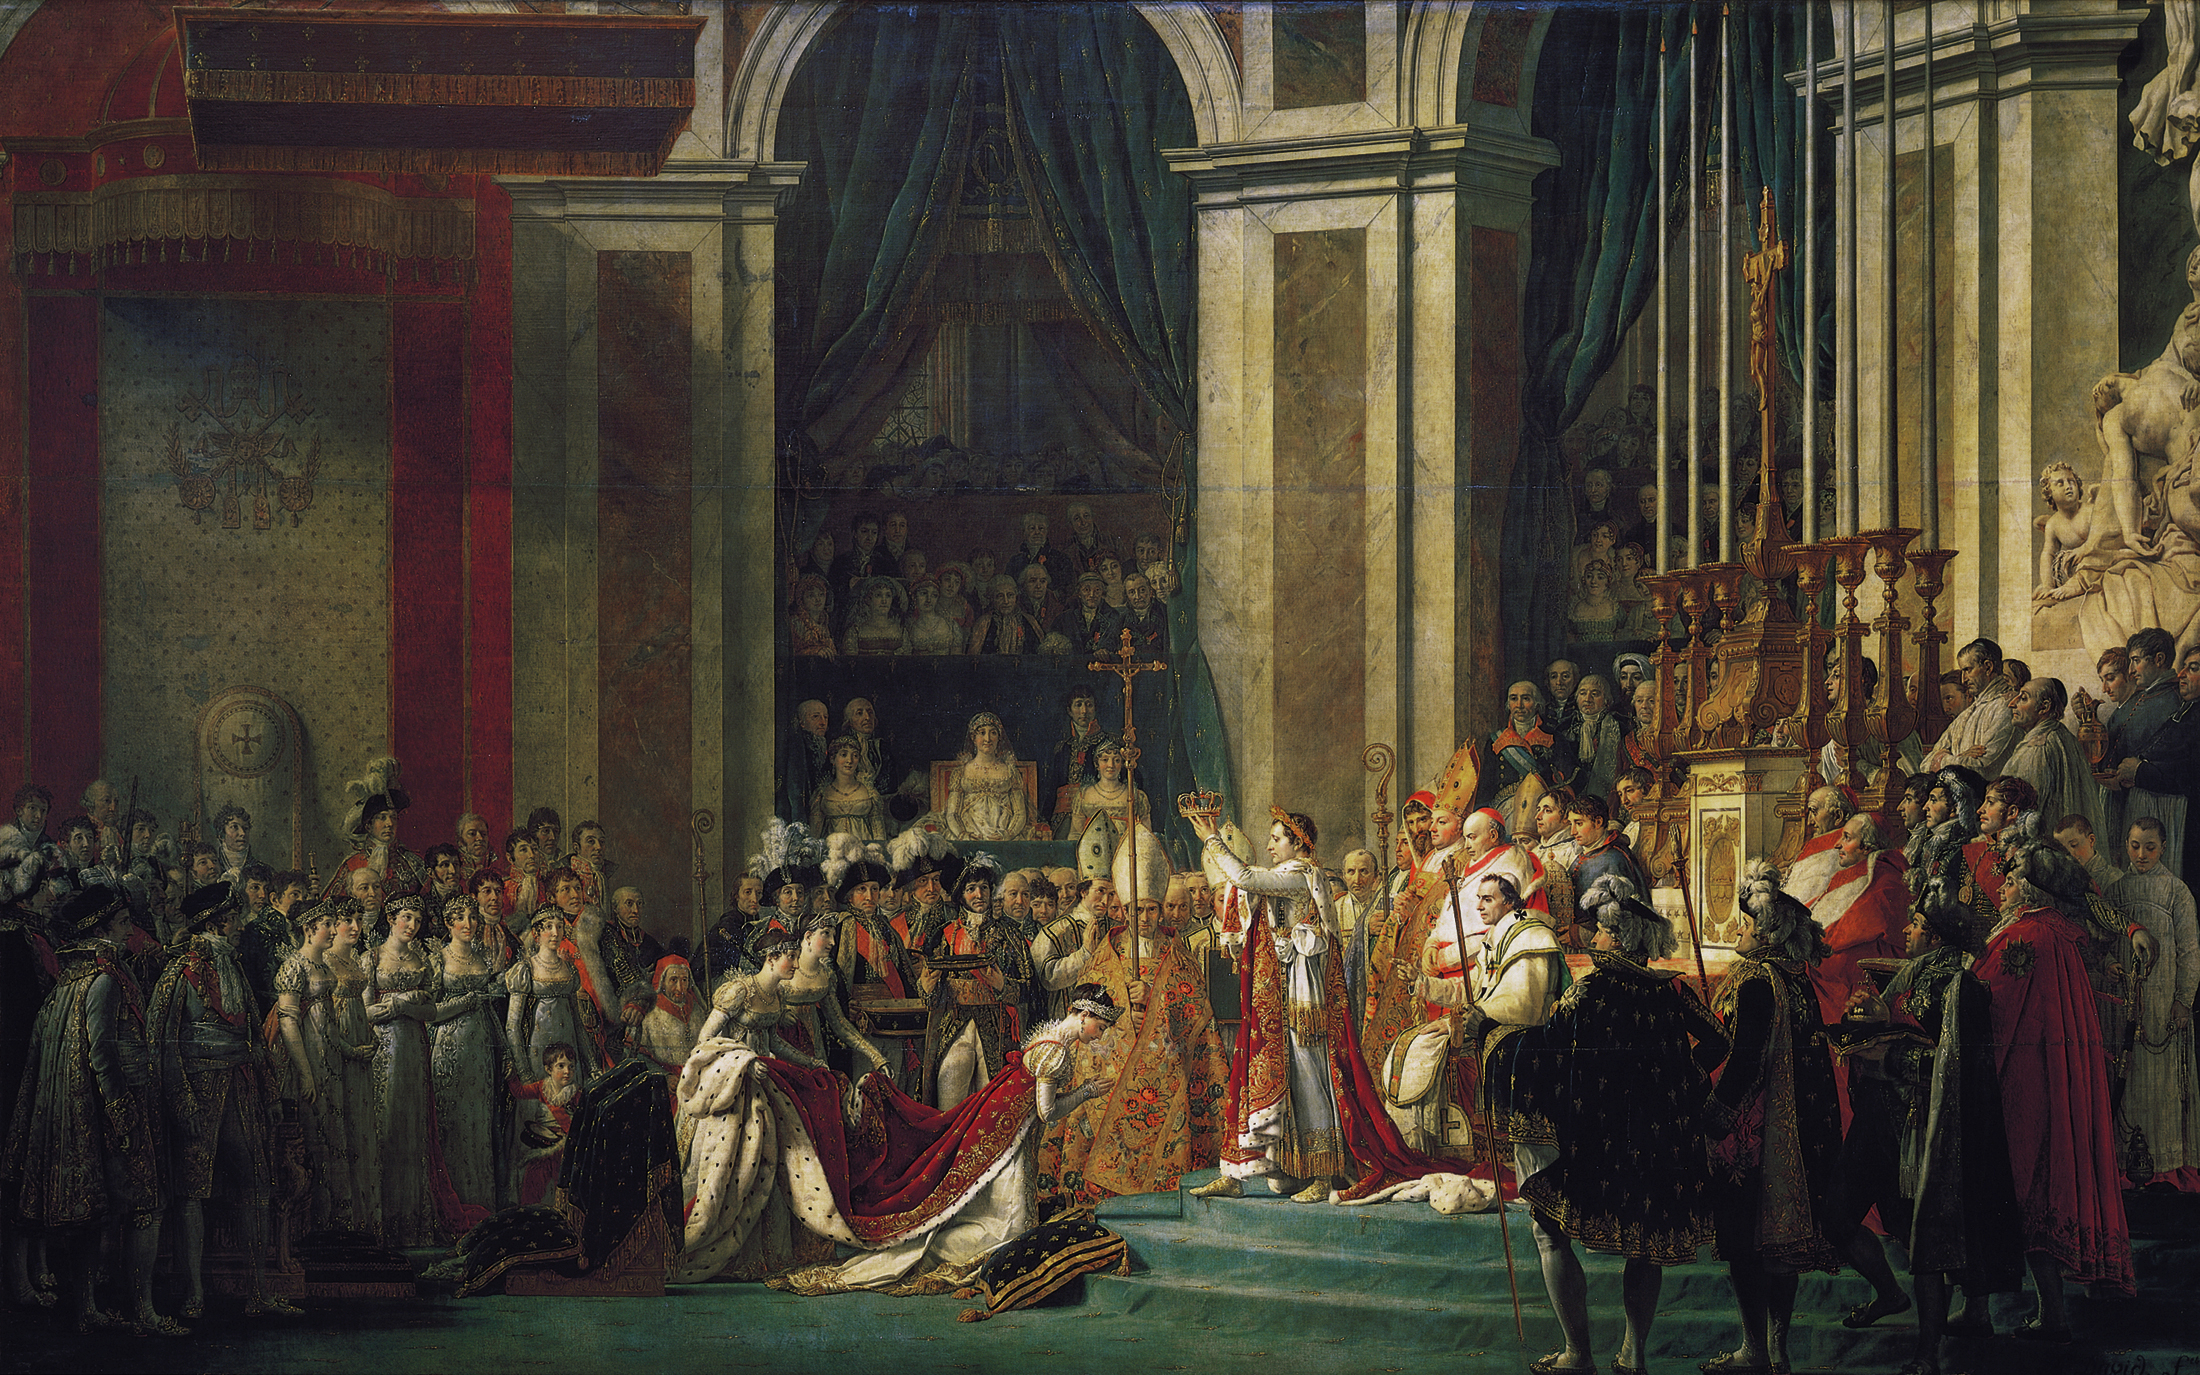 http://upload.wikimedia.org/wikipedia/commons/0/08/Jacques-Louis_David%2C_The_Coronation_of_Napoleon_edit.jpg